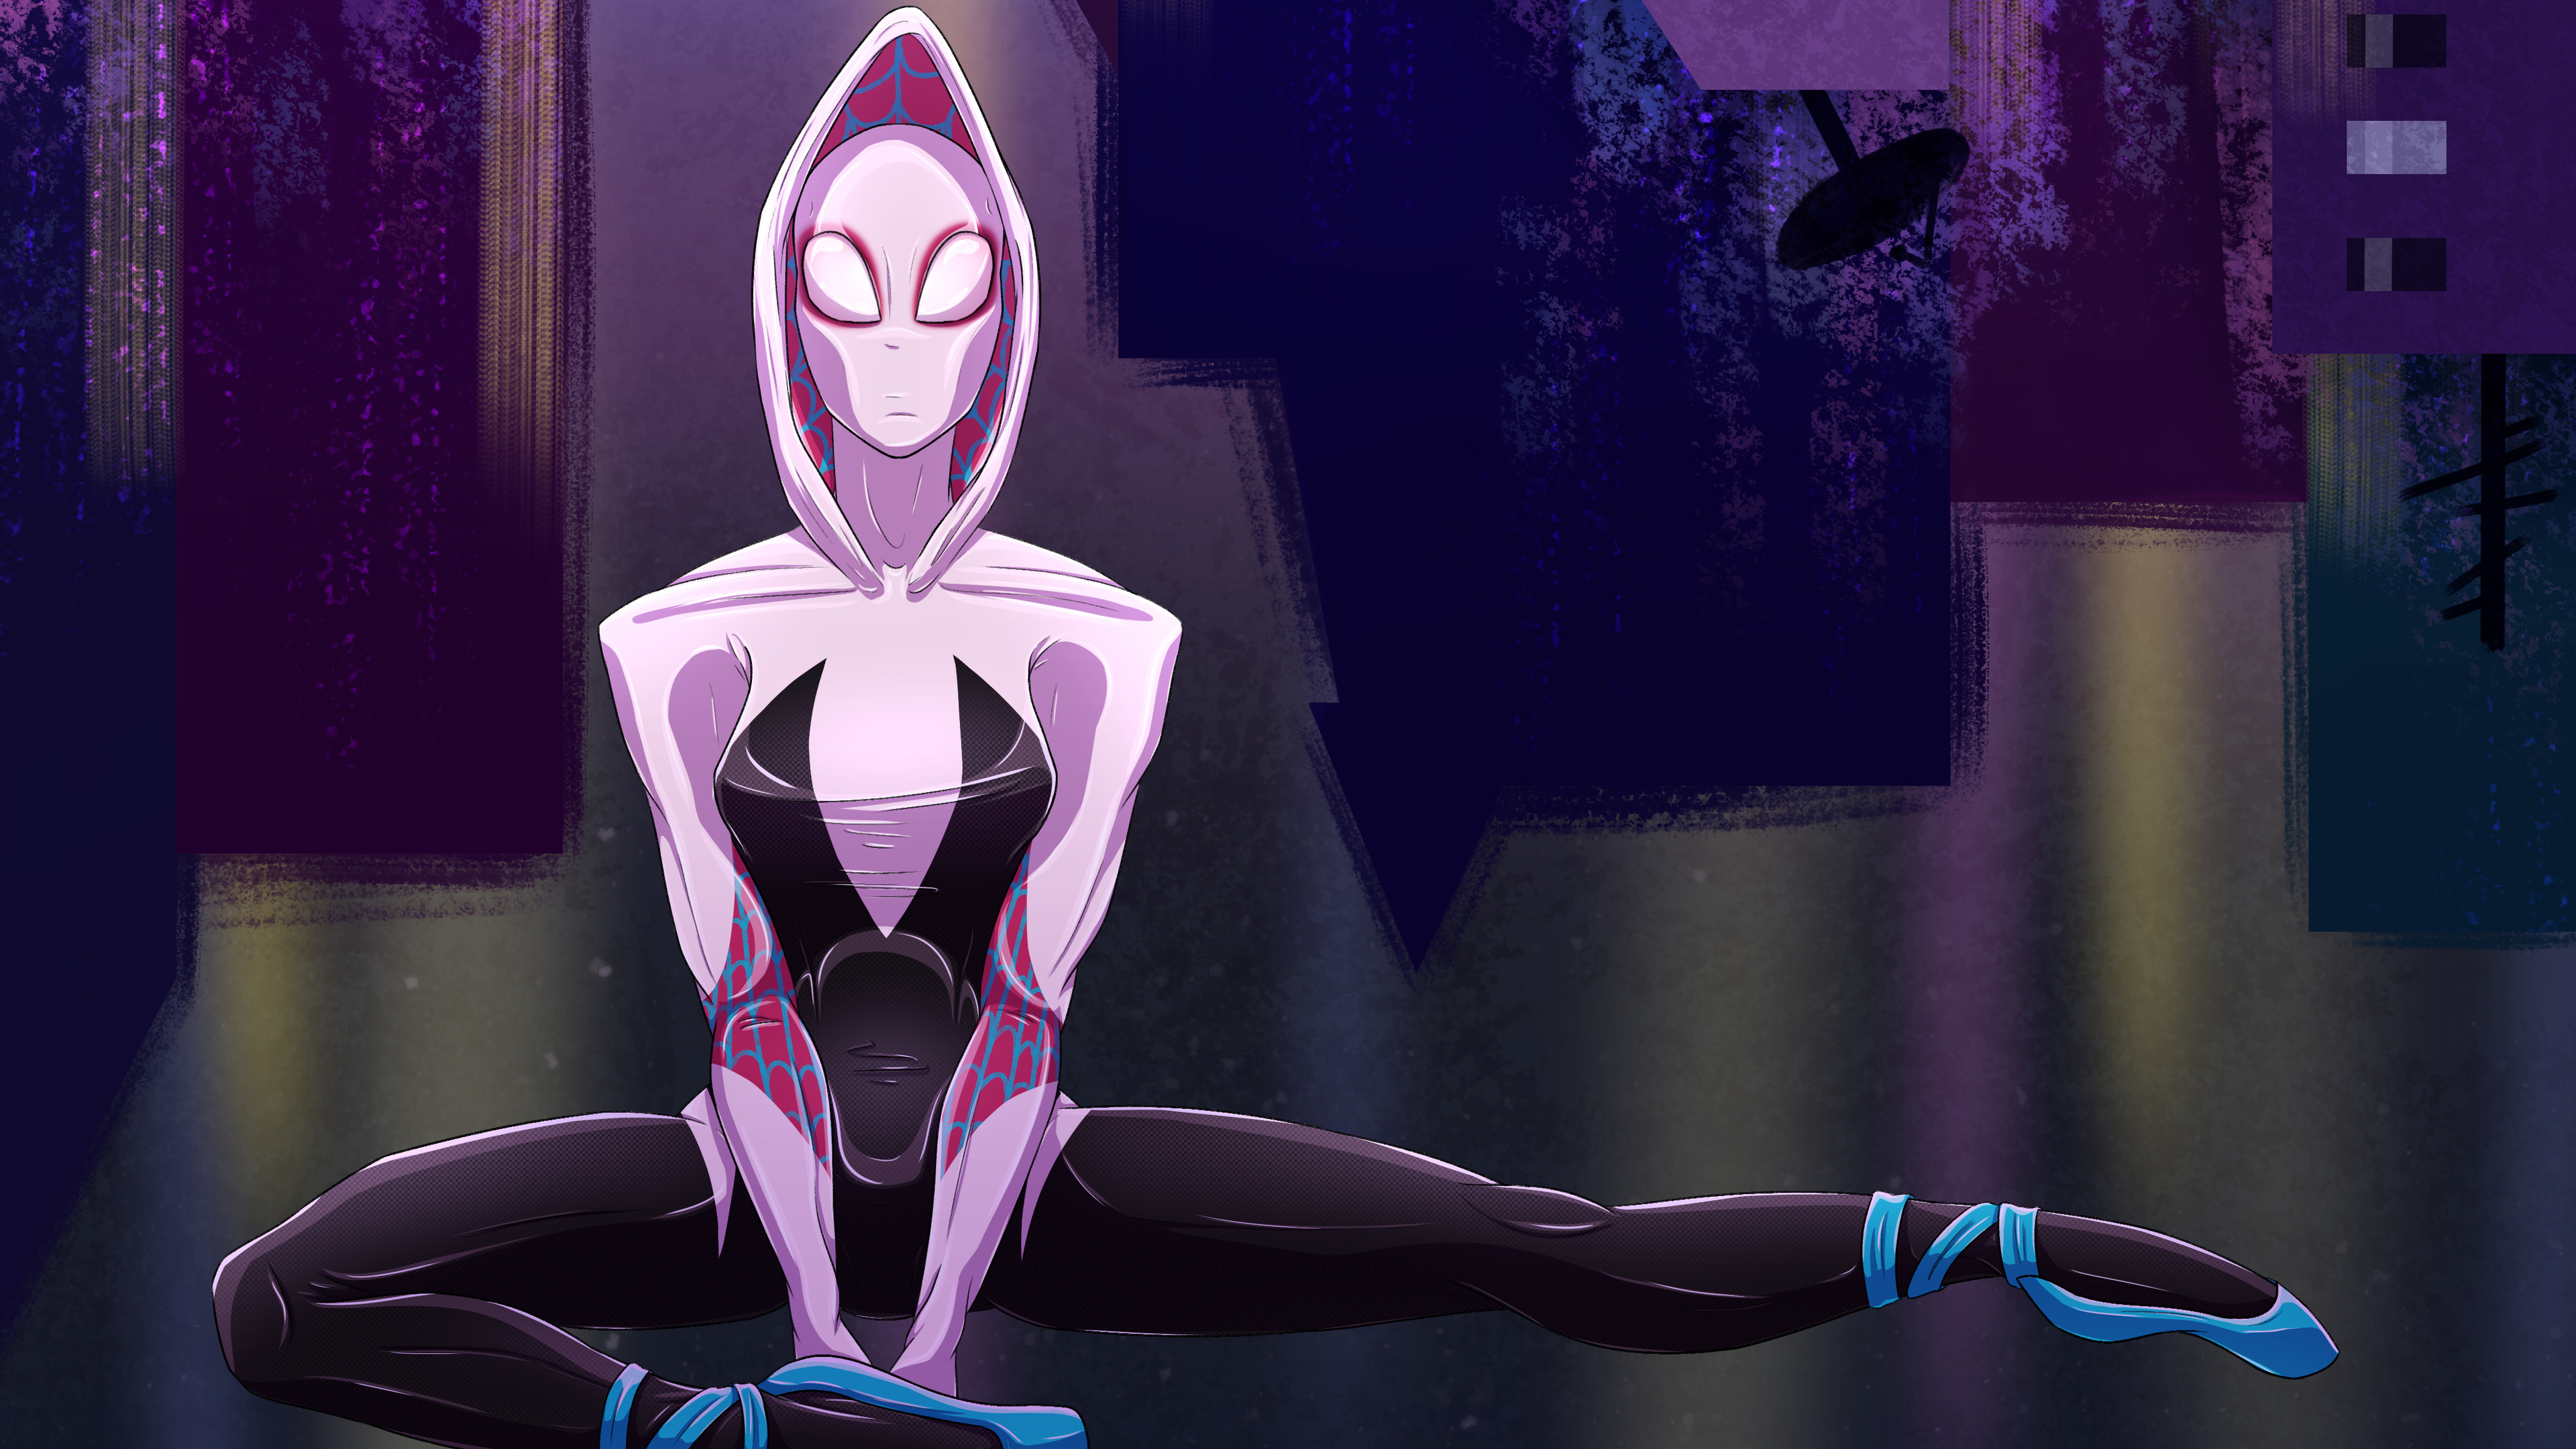 spider gwen artwork 4k 1556184986 - Spider Gwen Artwork 4k - superheroes wallpapers, spiderman into the spider verse wallpapers, hd-wallpapers, gwen stacy wallpapers, digital art wallpapers, deviantart wallpapers, artwork wallpapers, artist wallpapers, 4k-wallpapers